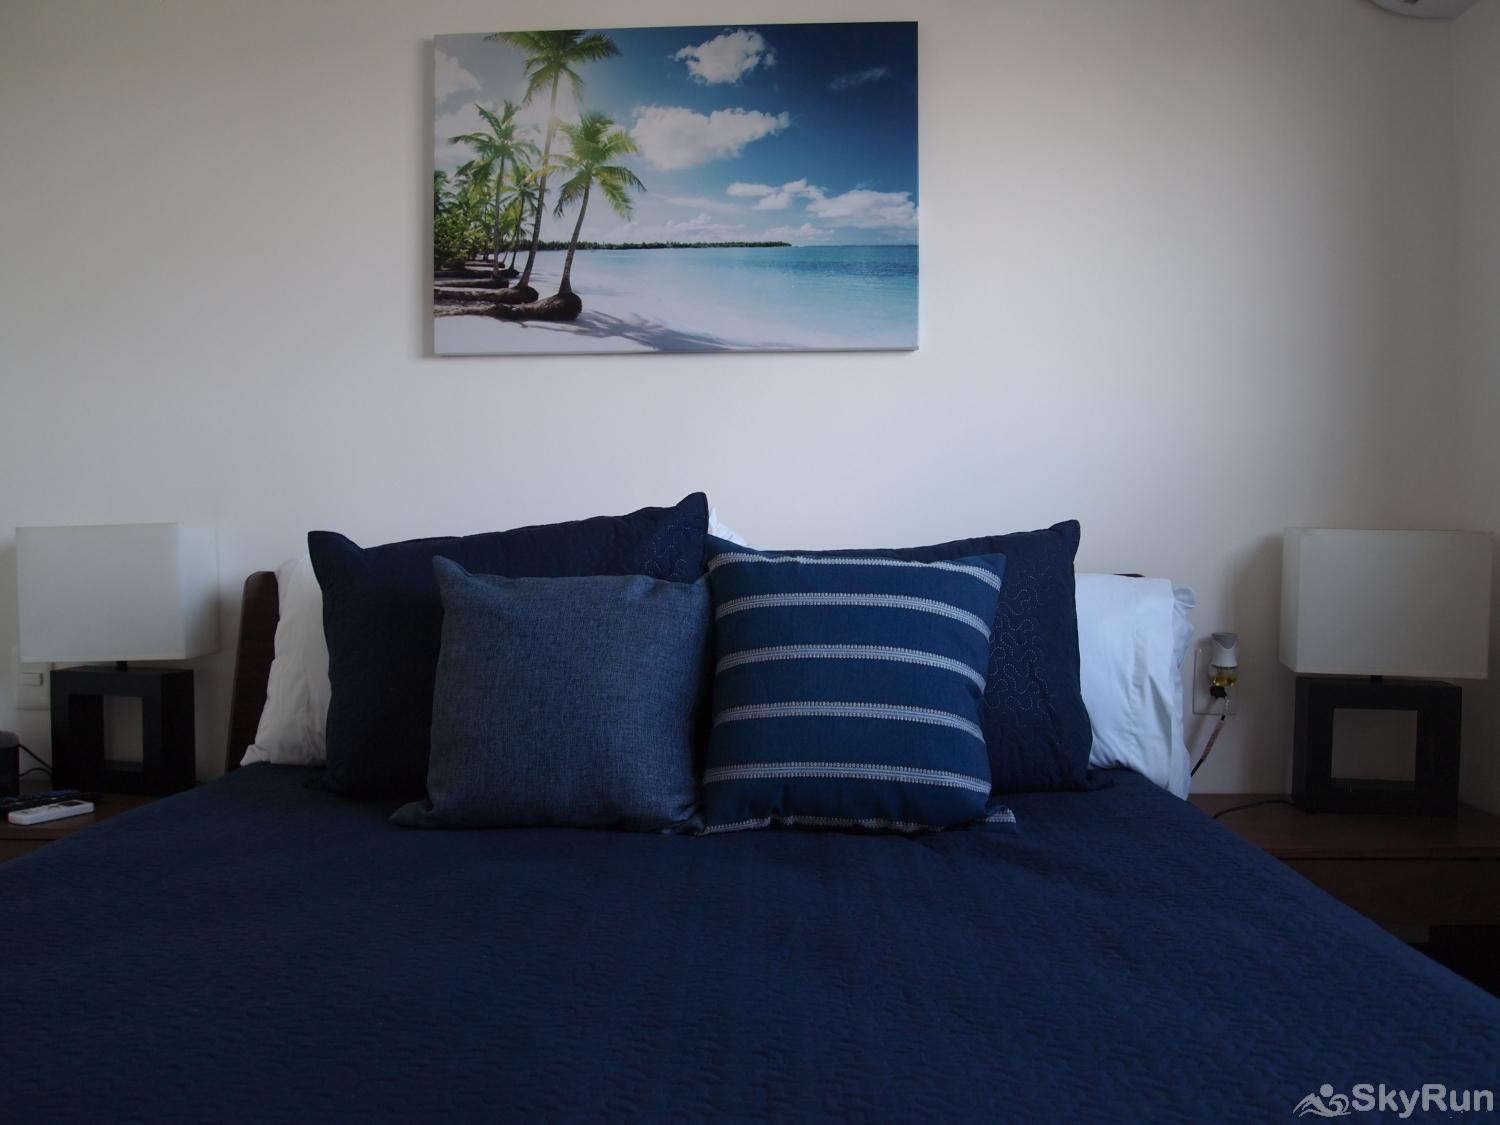 New PRME LoFt 303 Downtown Playa del Carmen spacious king size beds